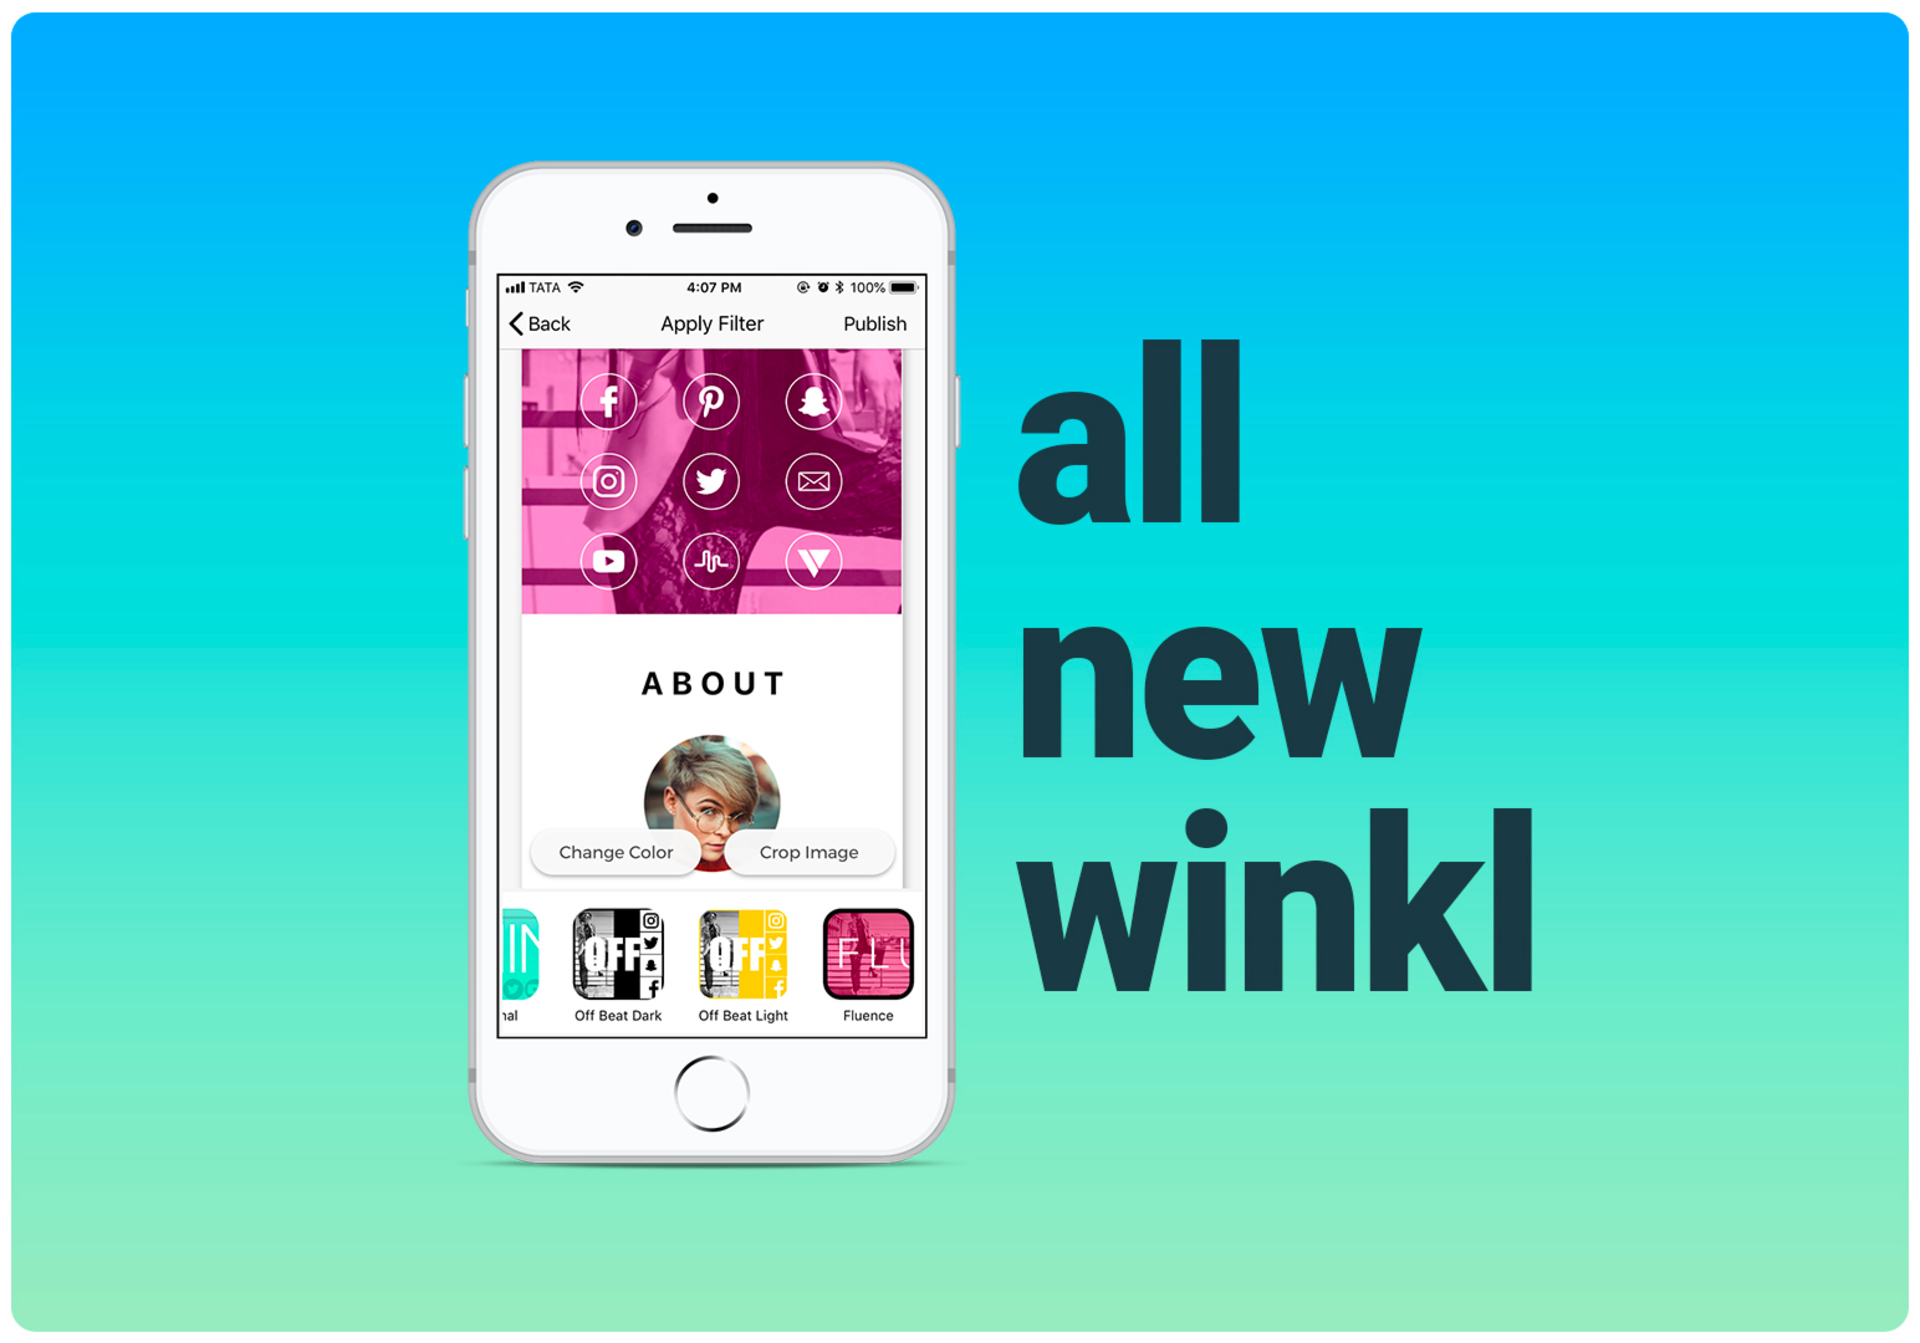 The all new Winkl is here image